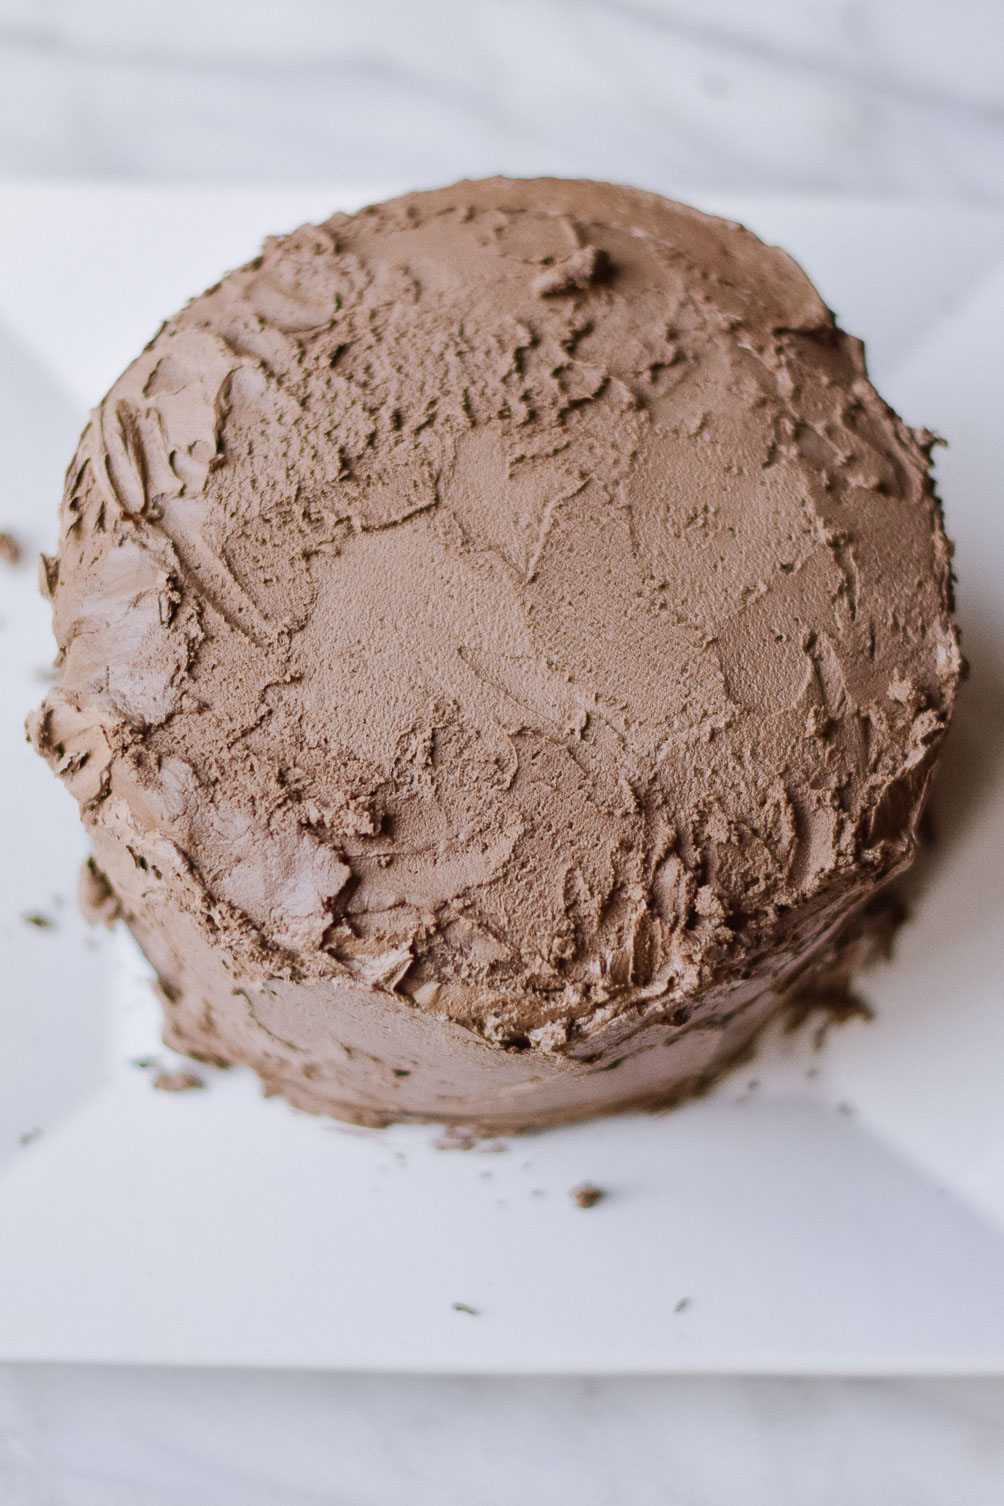 decadent holiday recipe for mudslide chocolate cake